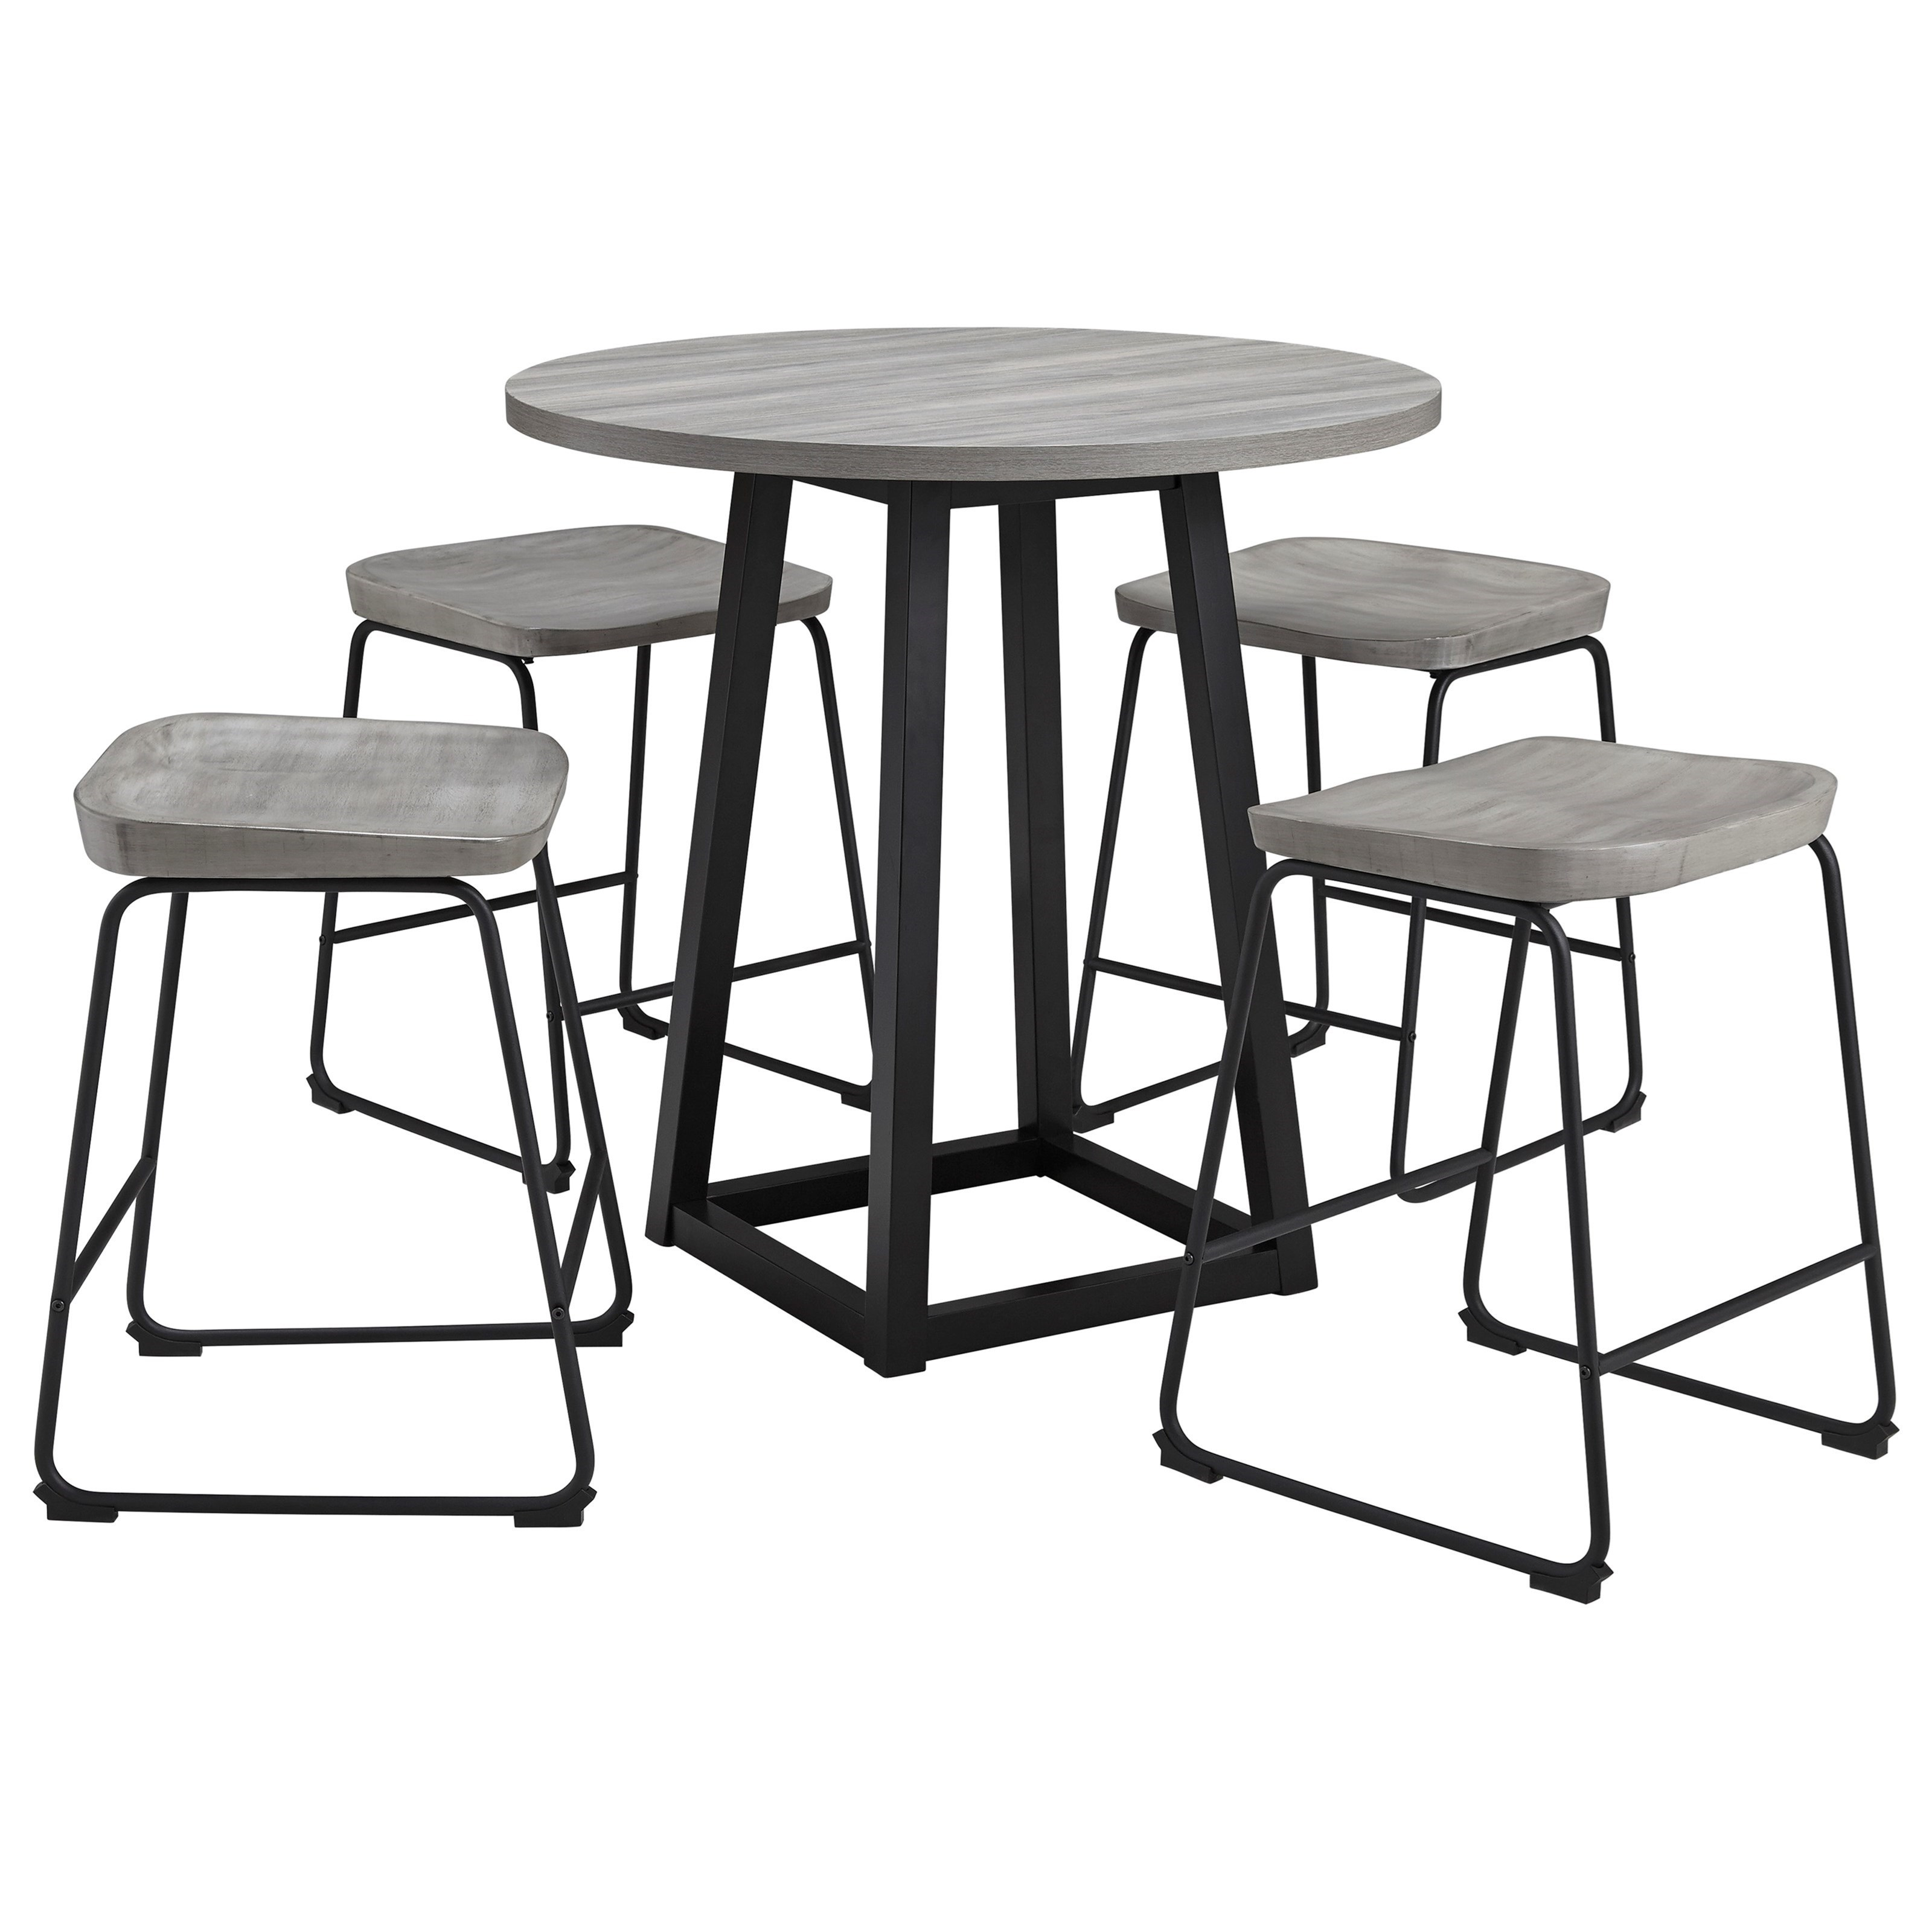 Showdell 5-Piece Counter Height Dining Table Set by Signature Design by Ashley at Northeast Factory Direct